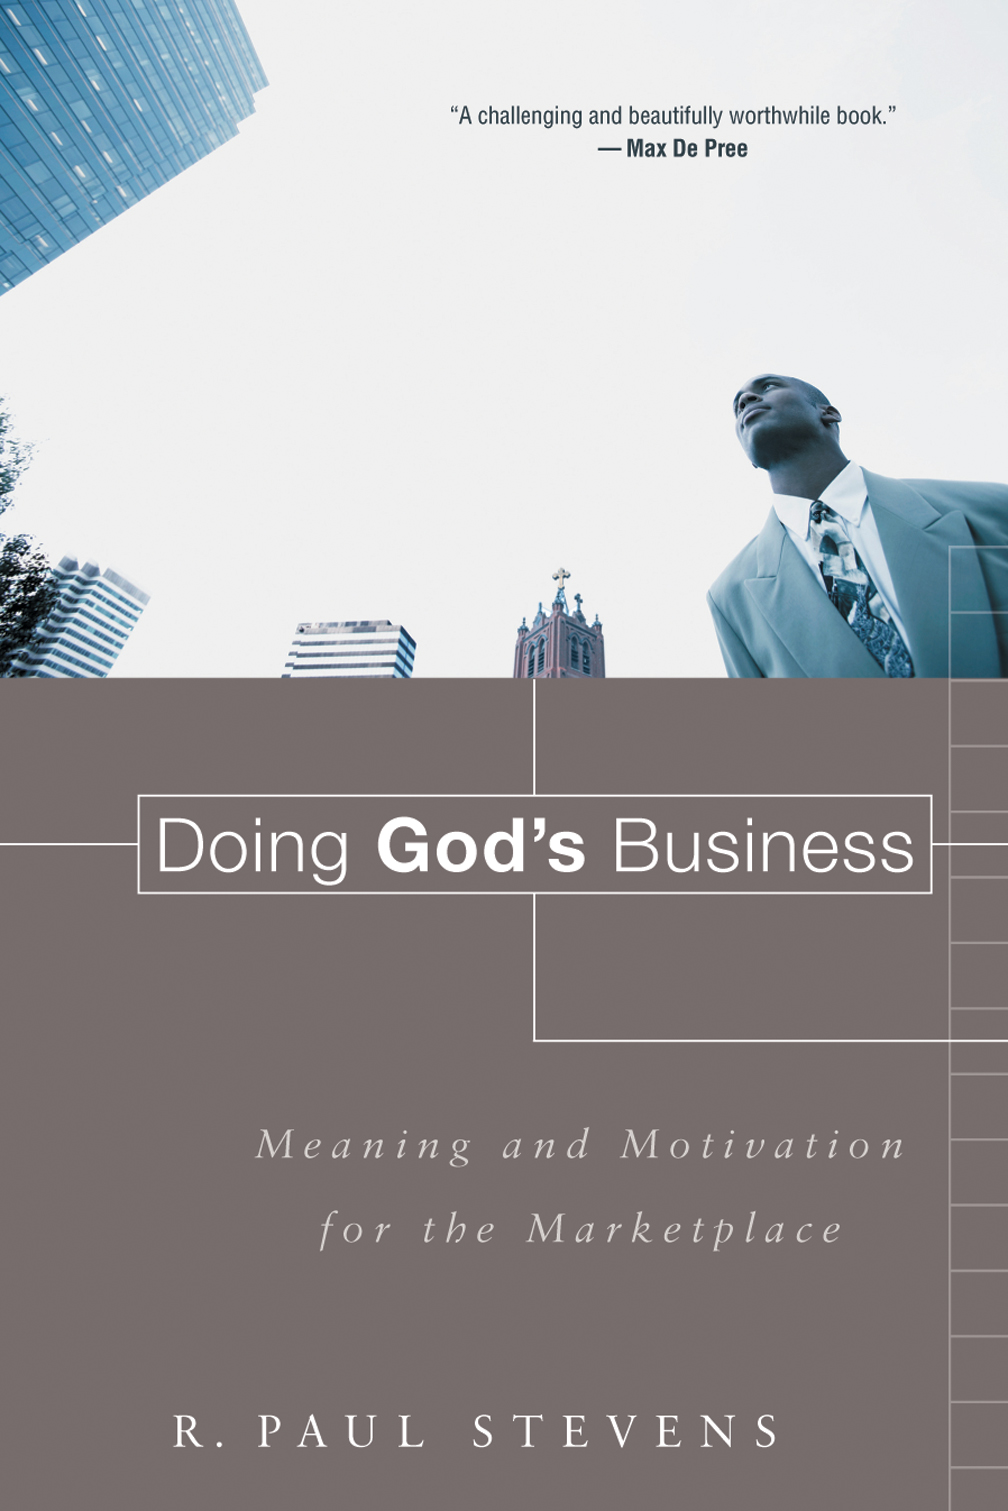 Doing God's Business